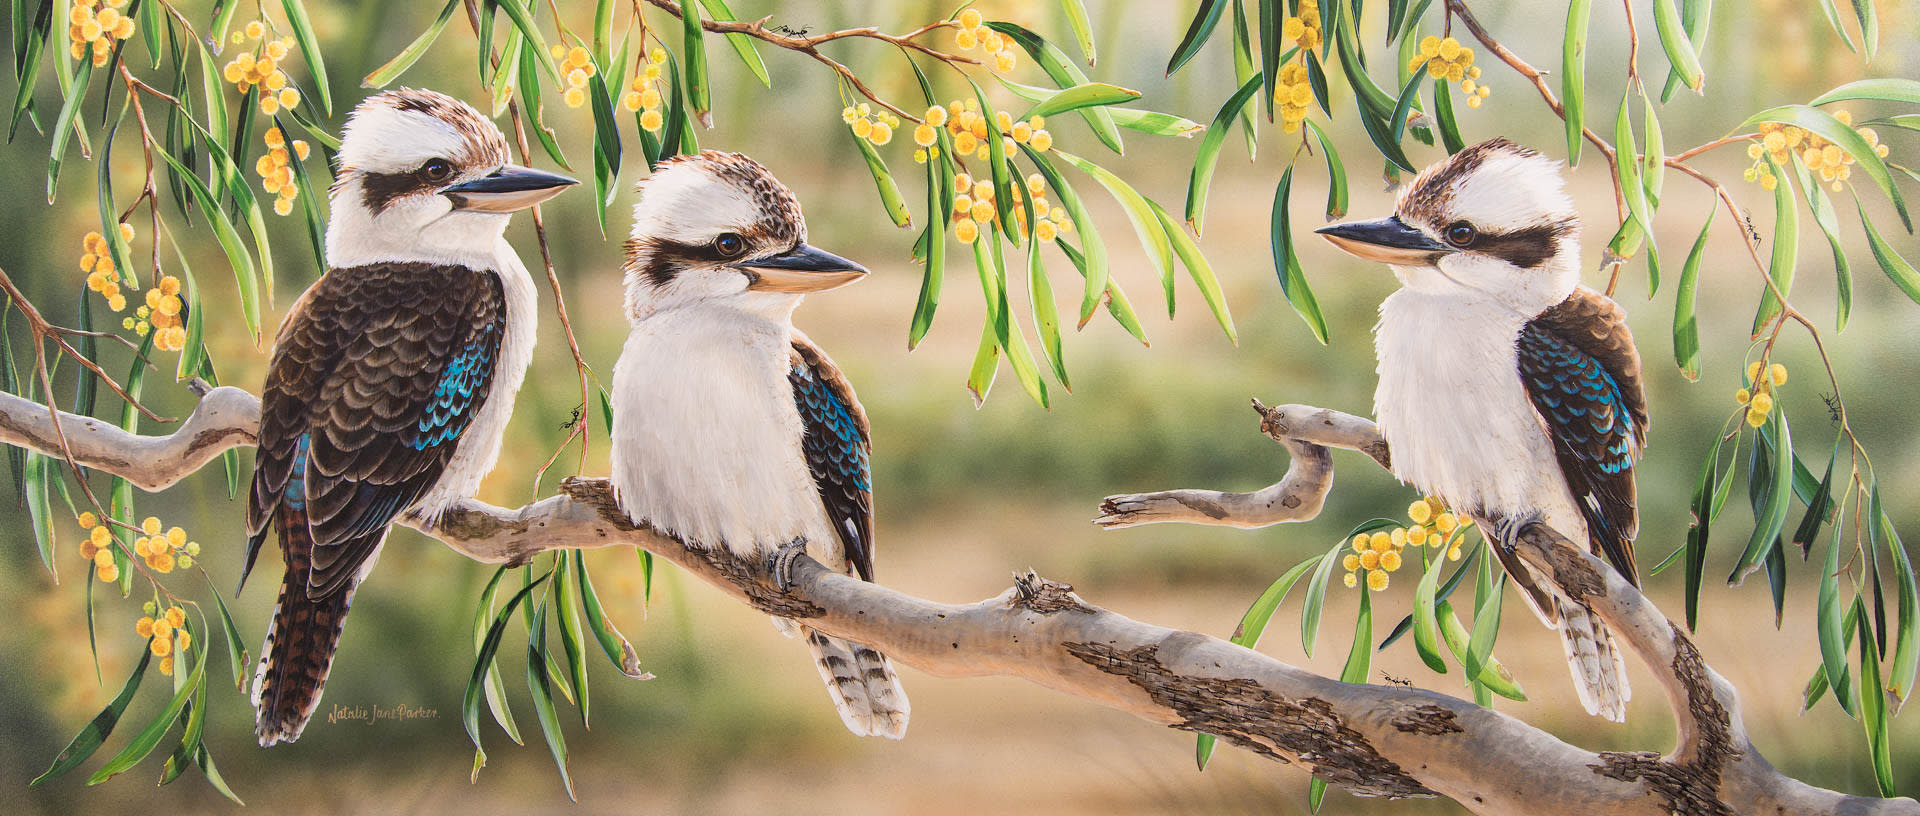 Golden life kookaburras with golden wattle natalie jane parker eh7zse